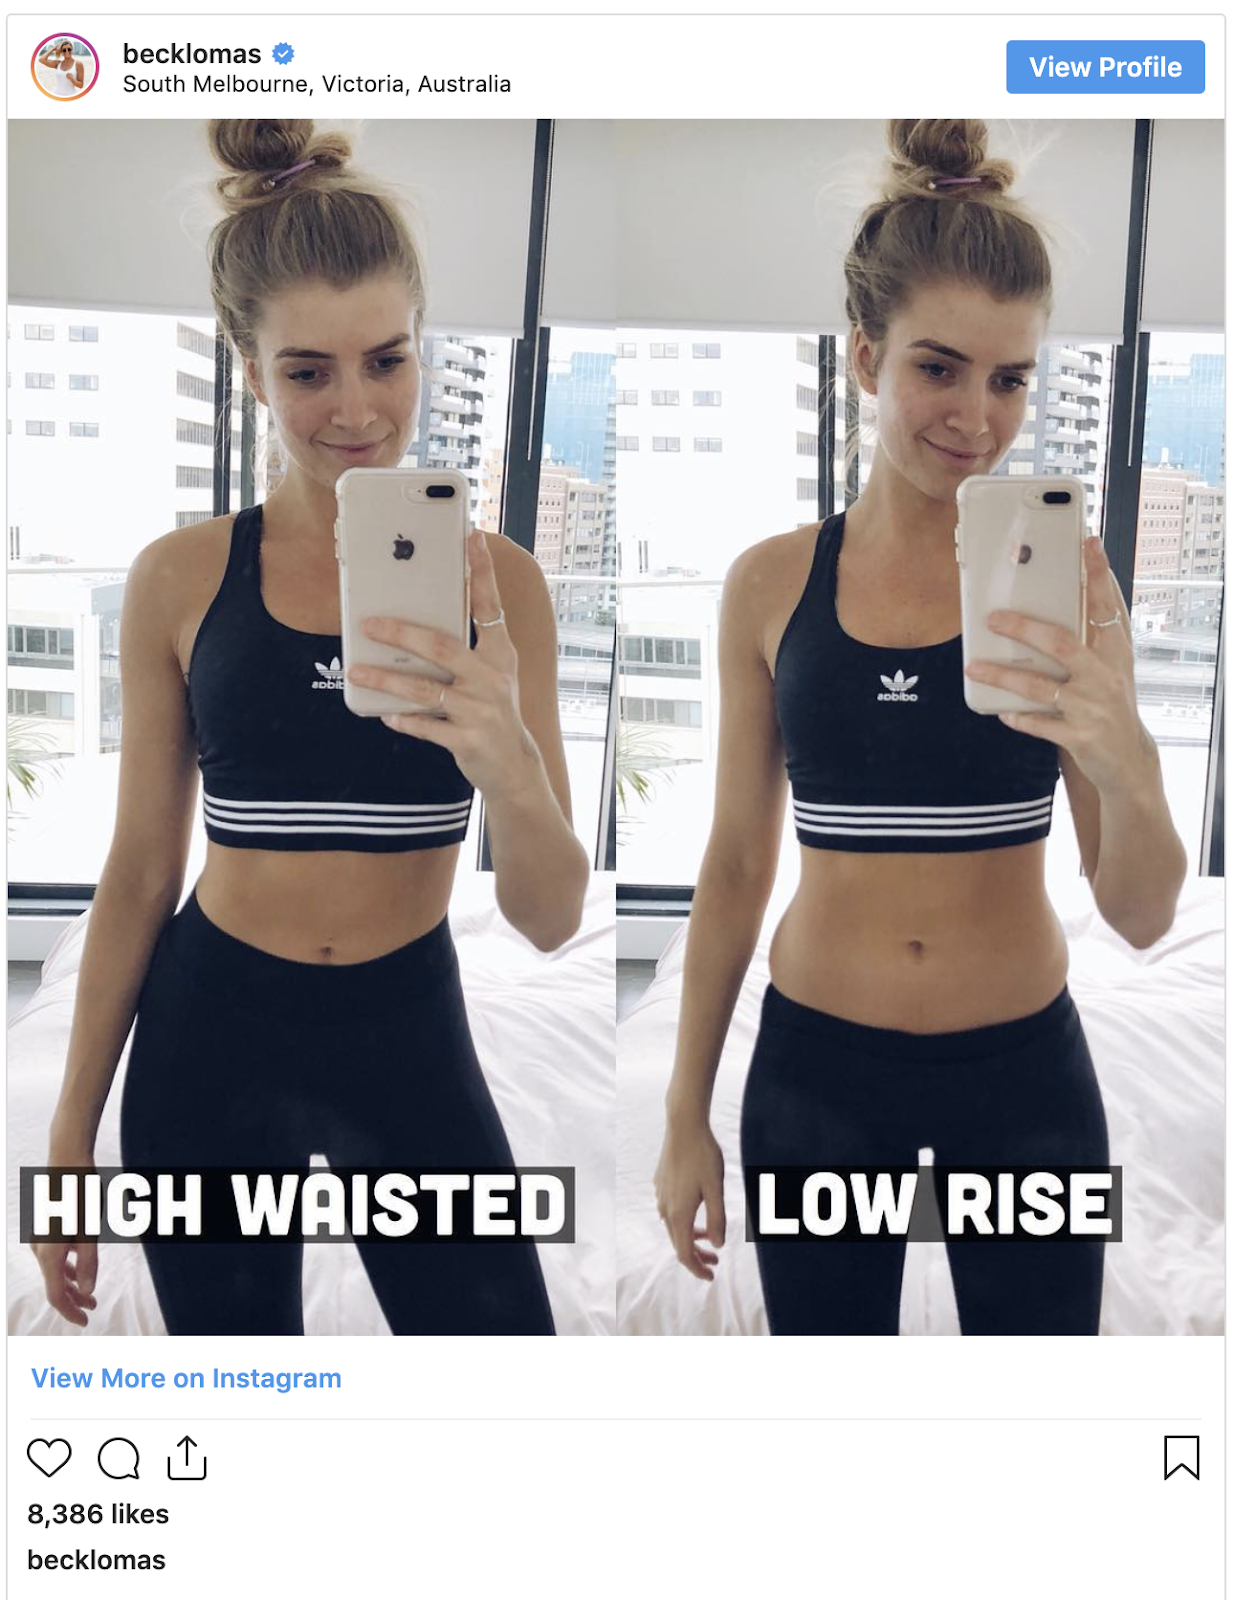 The difference between high waisted and mid-rise leggings